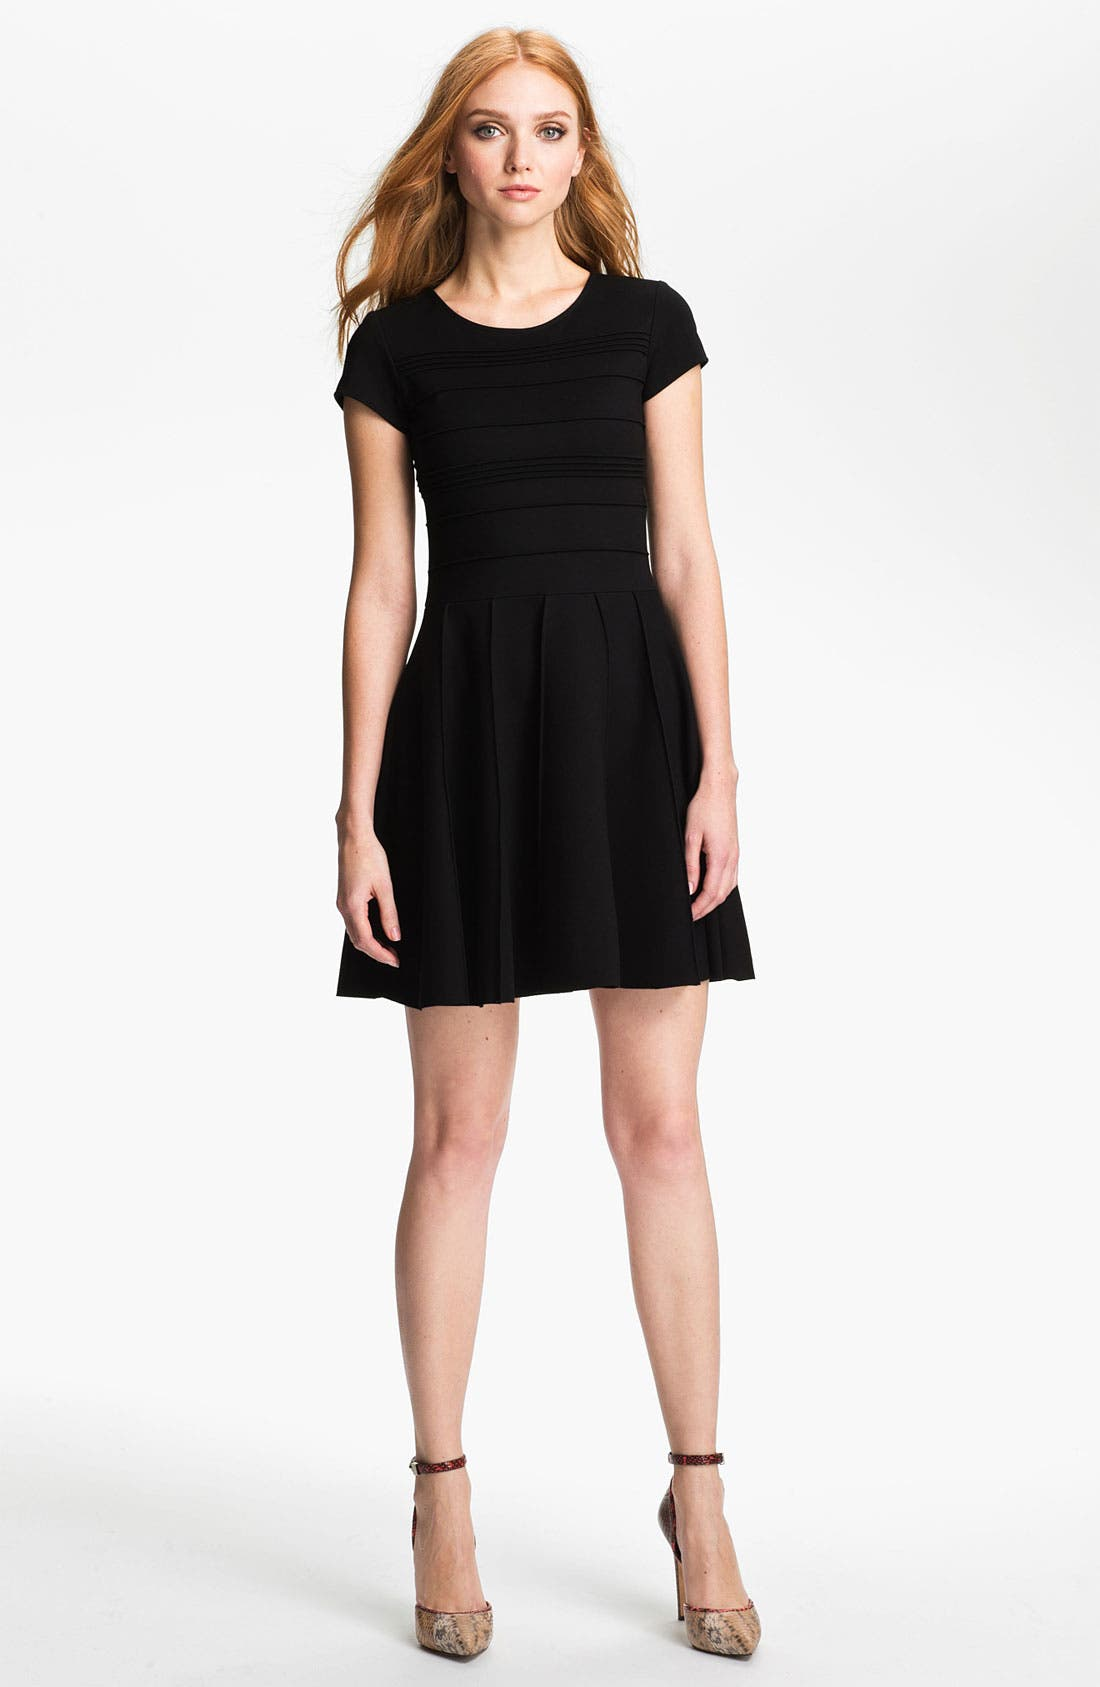 Main Image - Parker 'Tara' Stretch Fit & Flare Dress